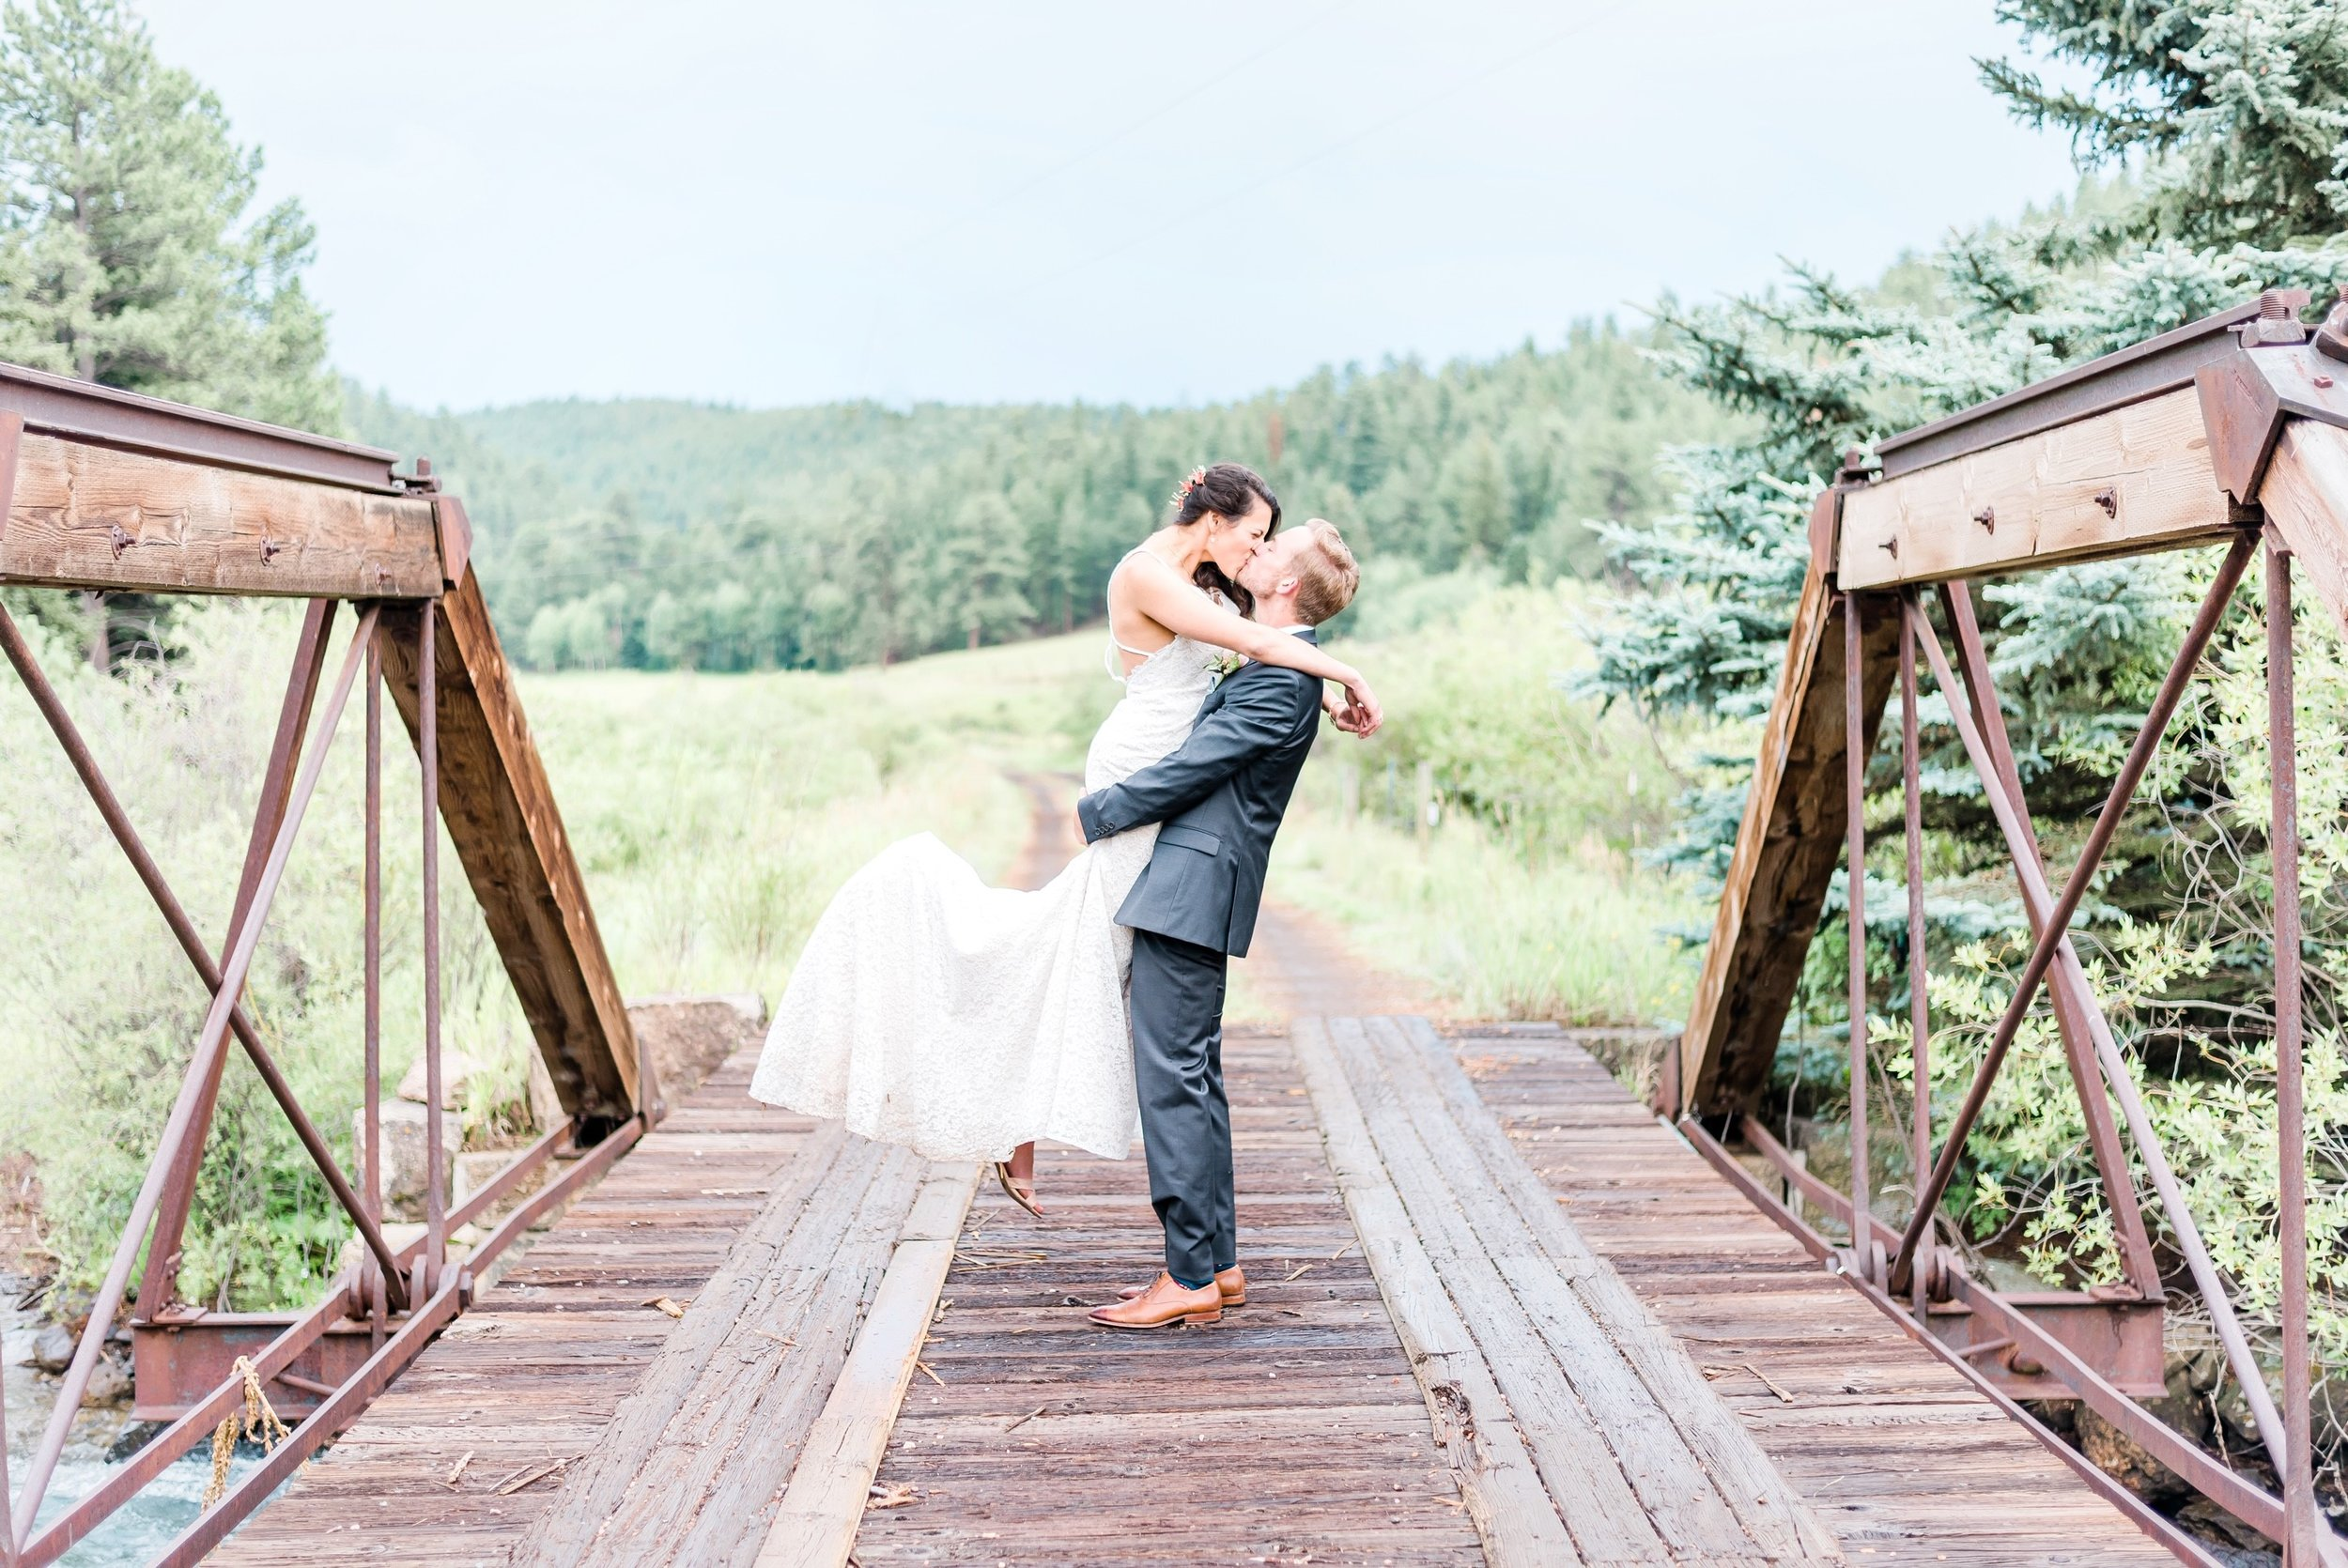 colorado wedding, mountain wedding, vail wedding photographer, aspen wedding photographer, rocky mountain national park wedding photographer, bright and airy, must have wedding photos